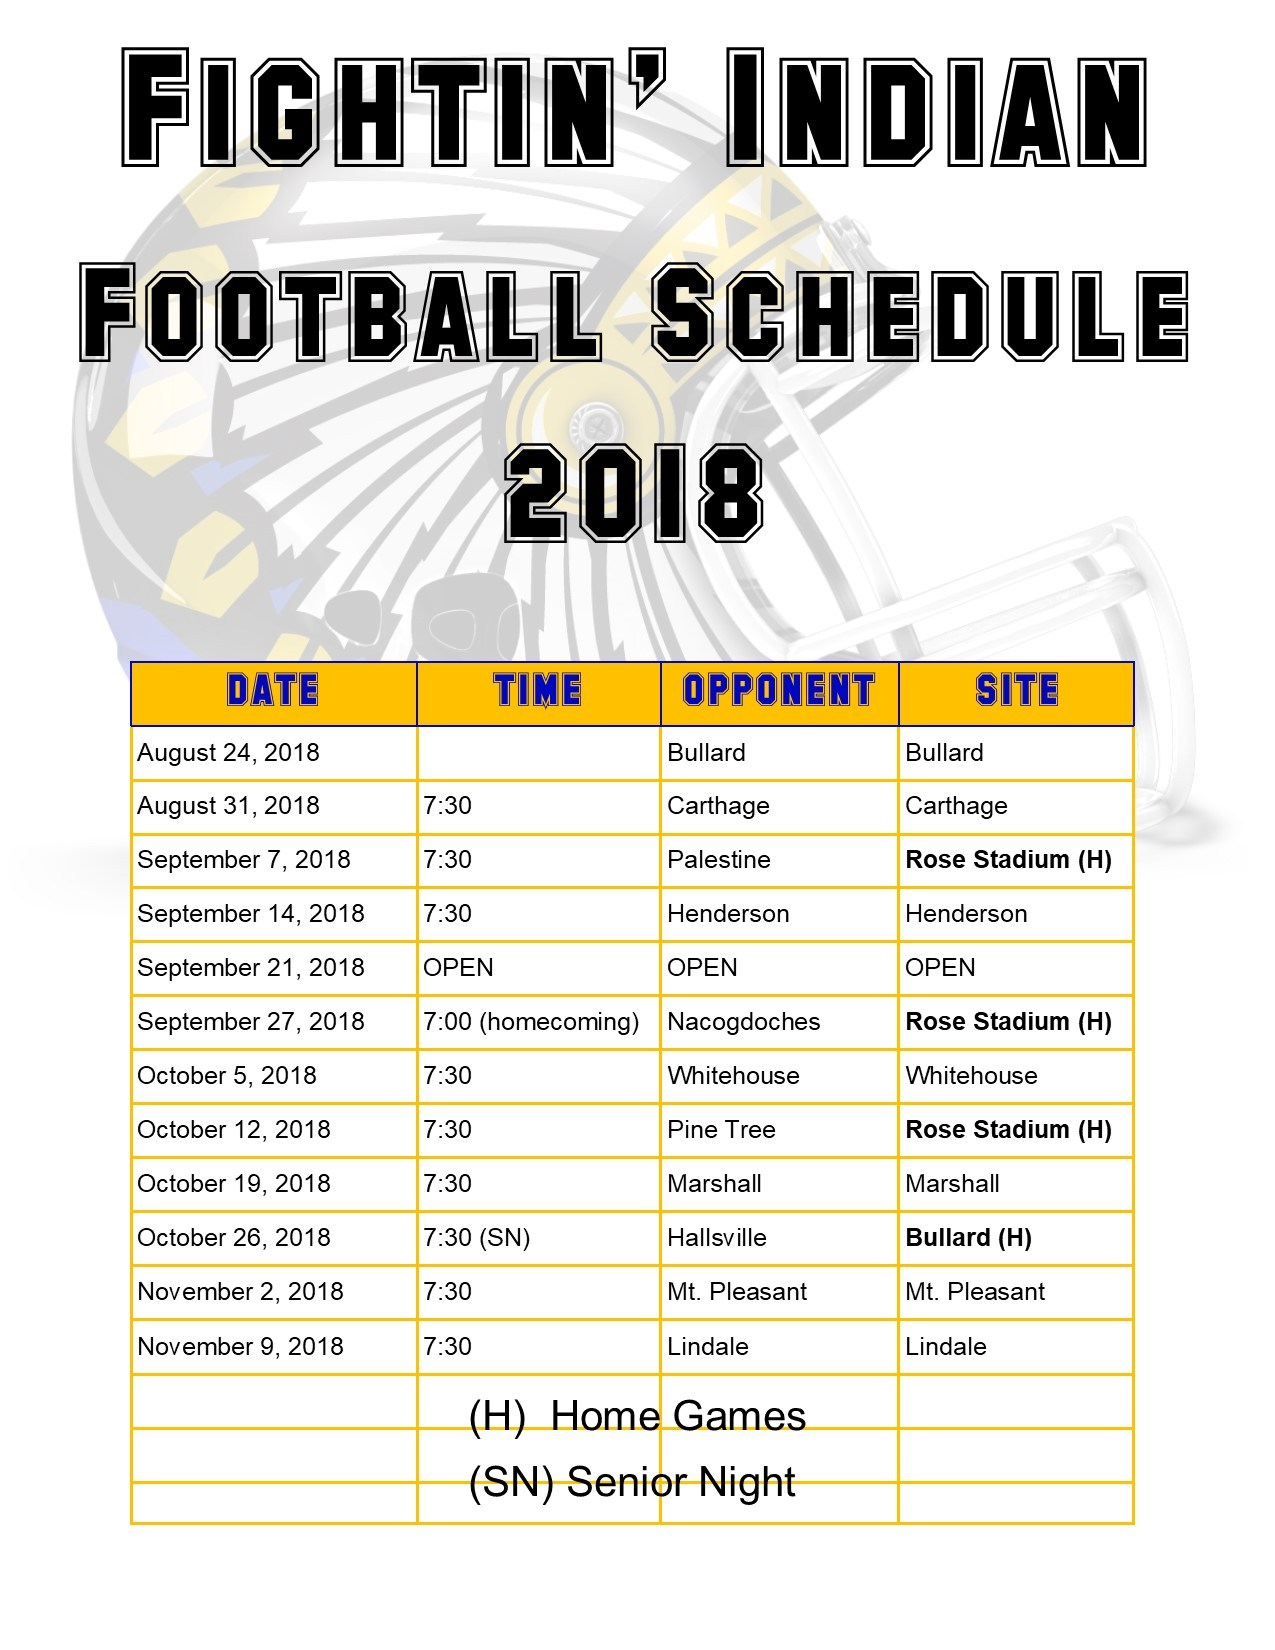 list of the football schedule for 2018 and a helmet in the background